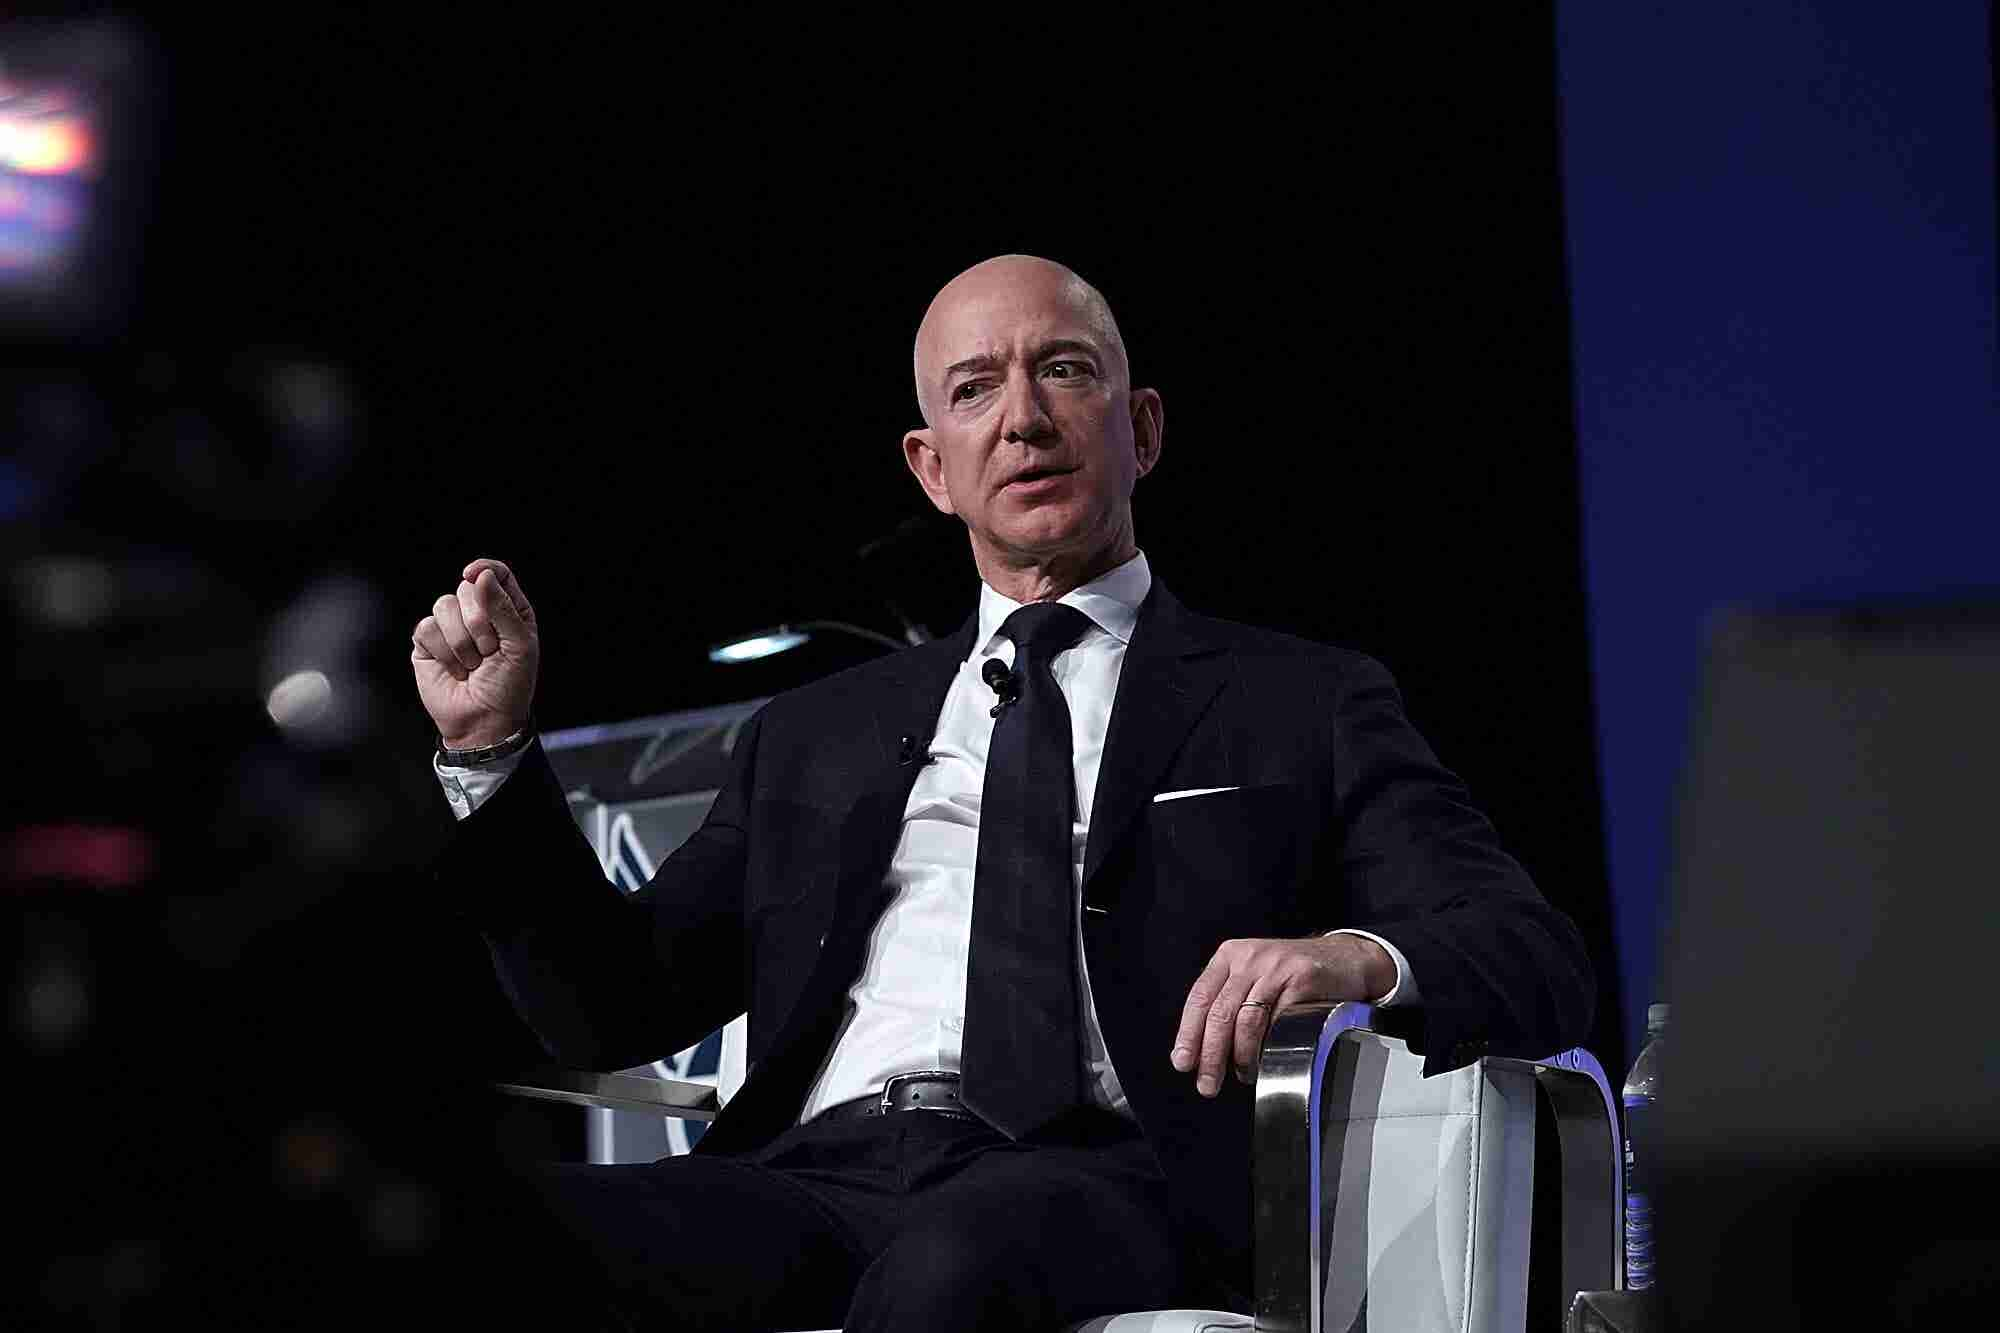 Jeff Bezos Reveals What Inspires Him the Most at Work